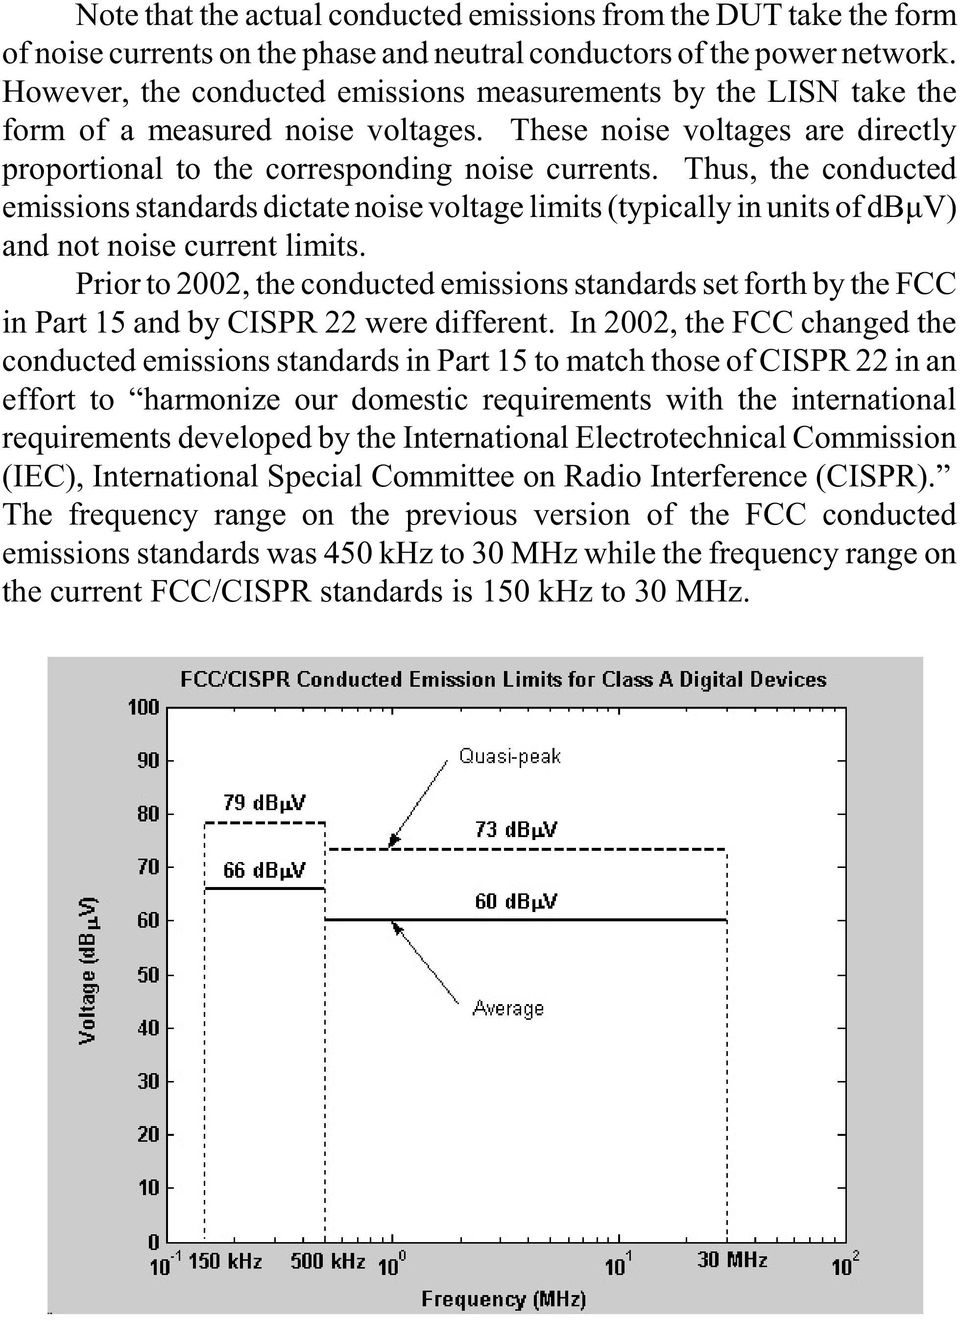 Thus, the conducted emissions standards dictate noise voltage limits (typically in units of dbìv) and not noise current limits.